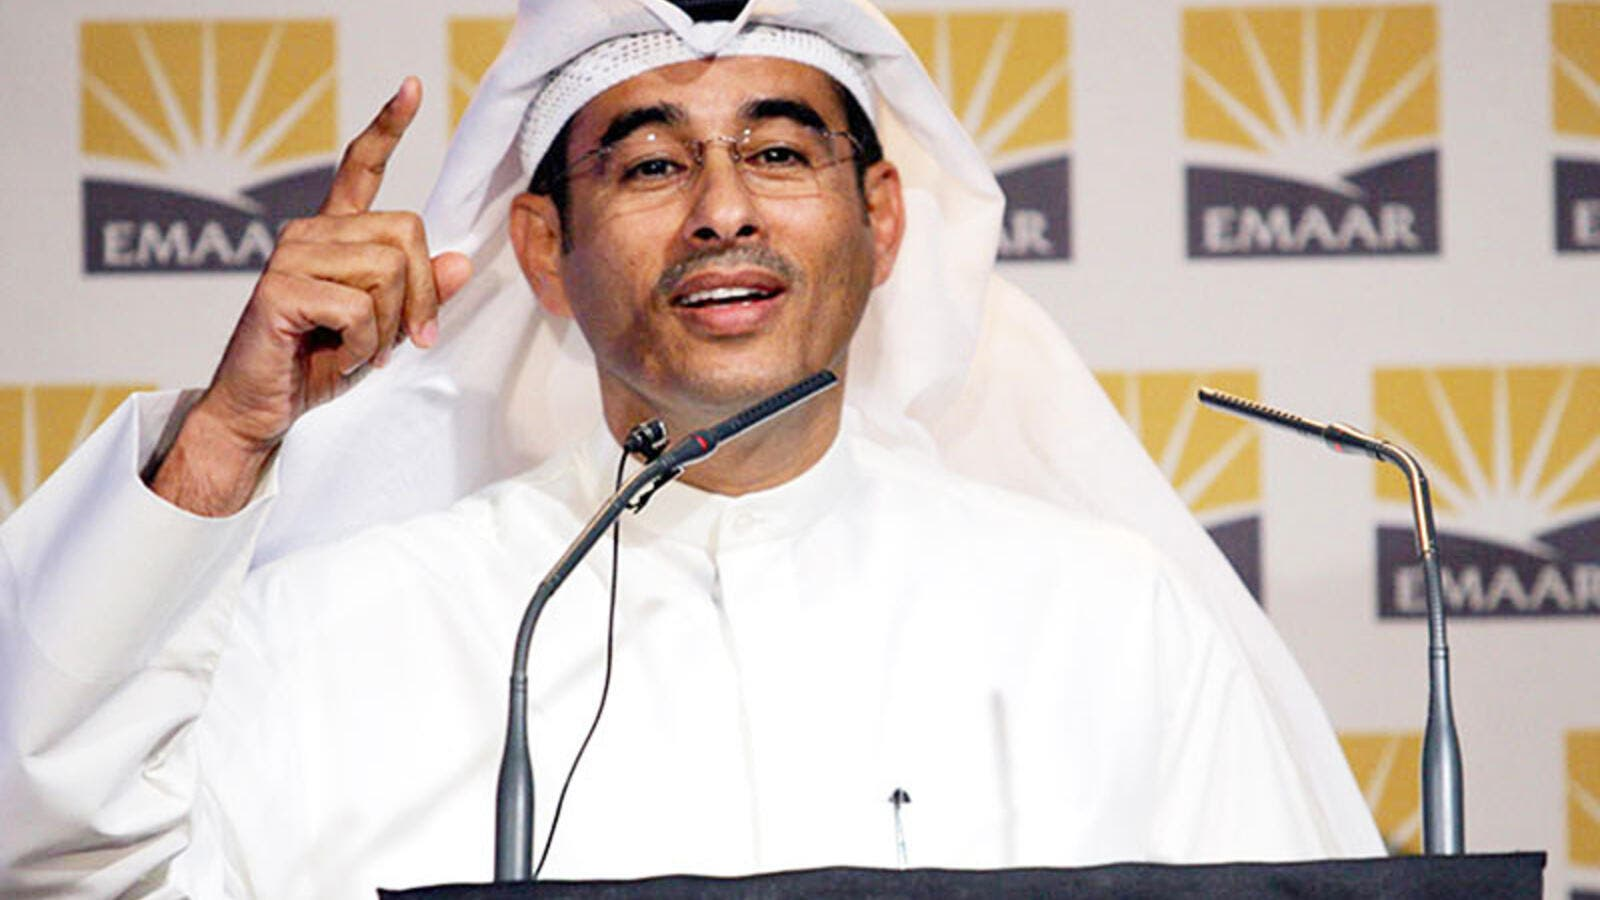 Emaar's Alabbar Acquires Majority Stake in E-commerce Site